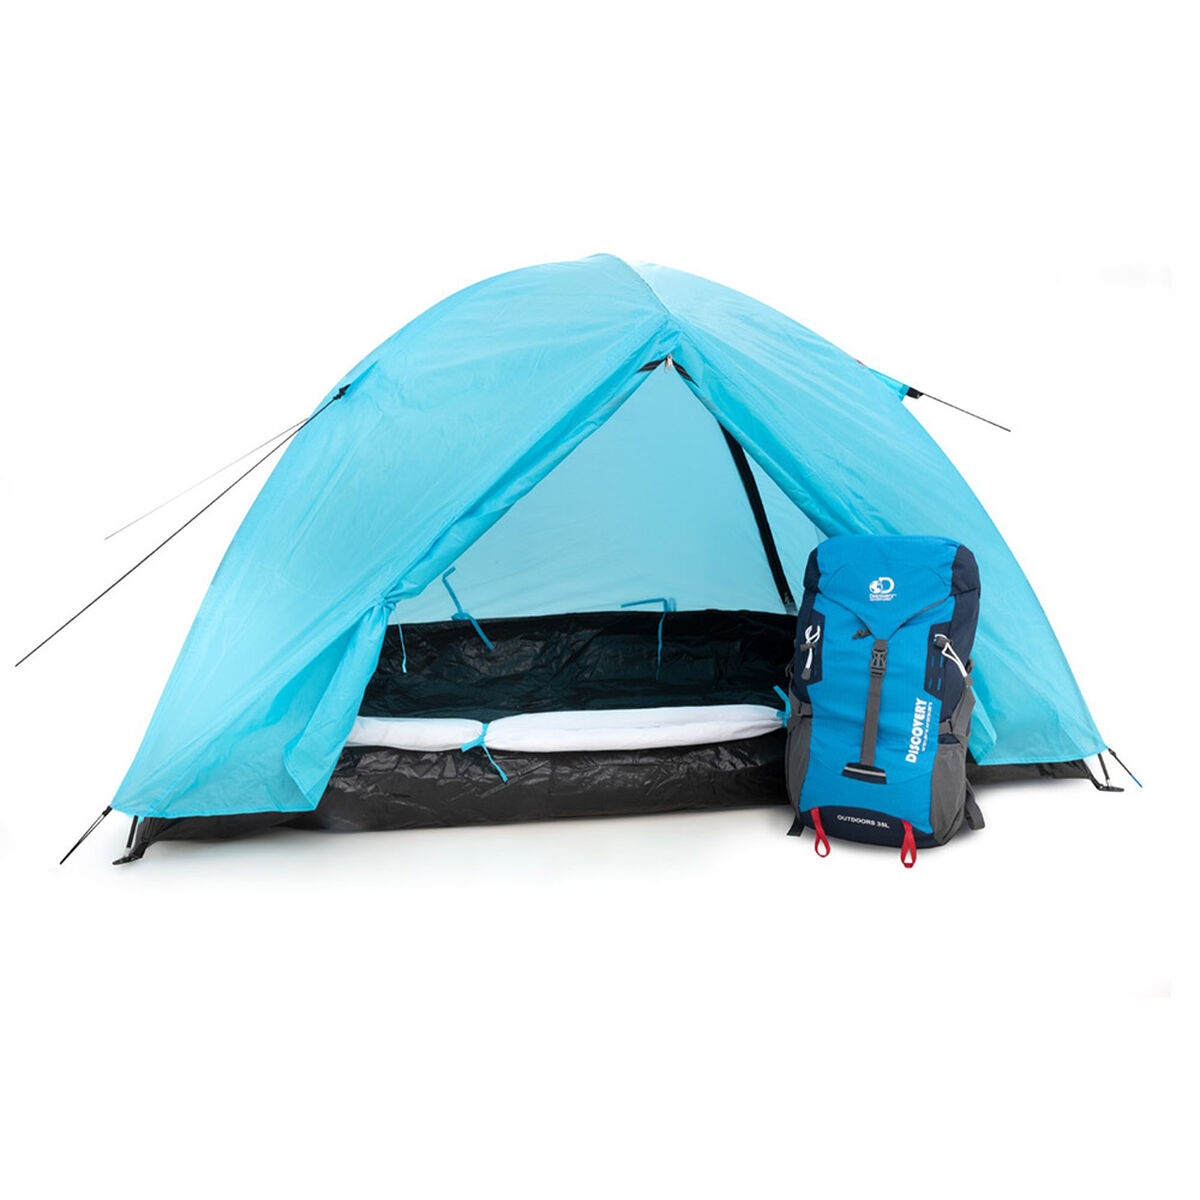 Carpa Grand Canyon Ii Discovery Adventure 2 Personas